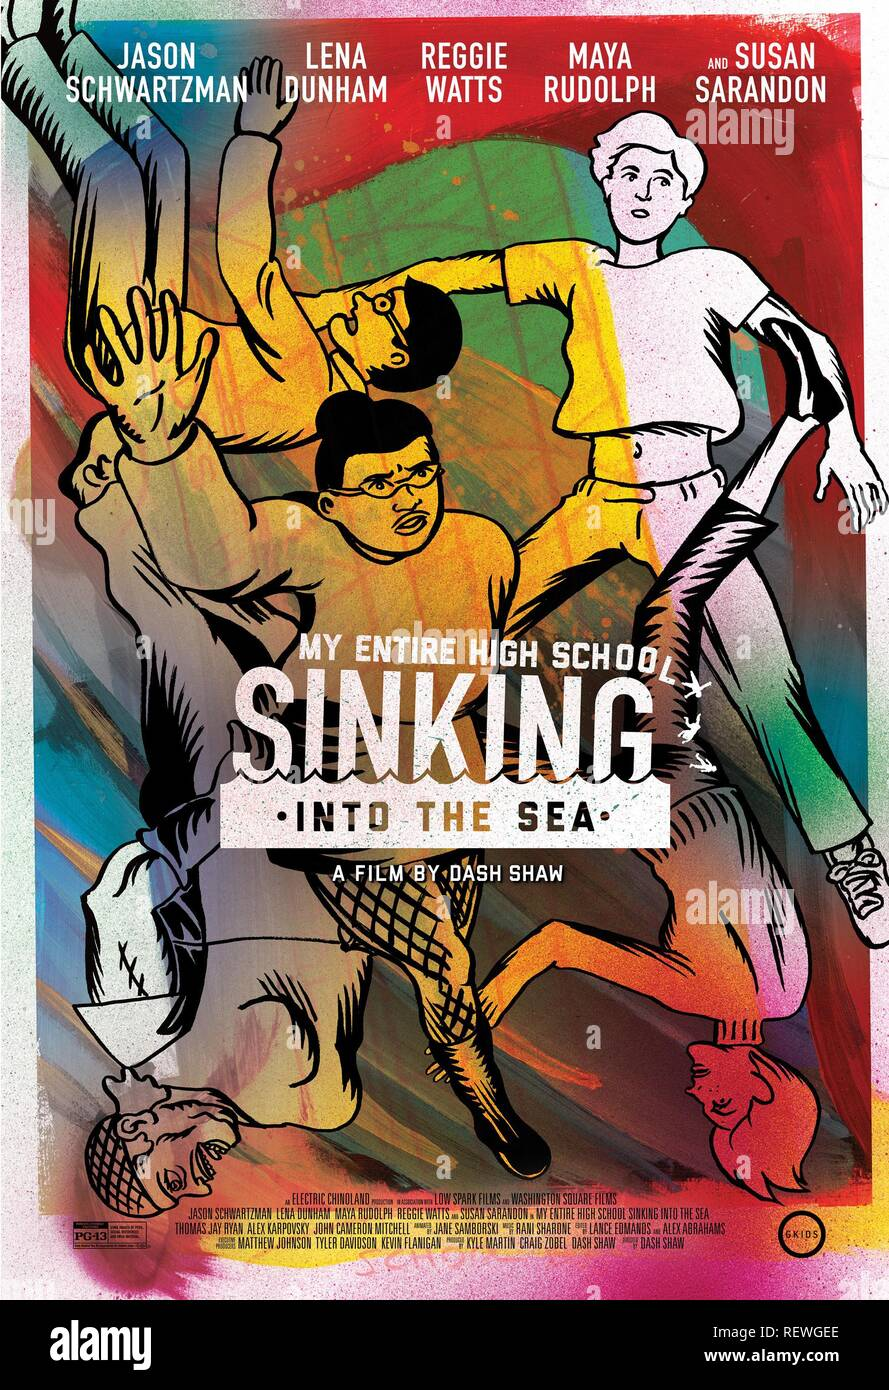 MOVIE POSTER MY ENTIRE HIGH SCHOOL SINKING INTO THE SEA (2016) - Stock Image